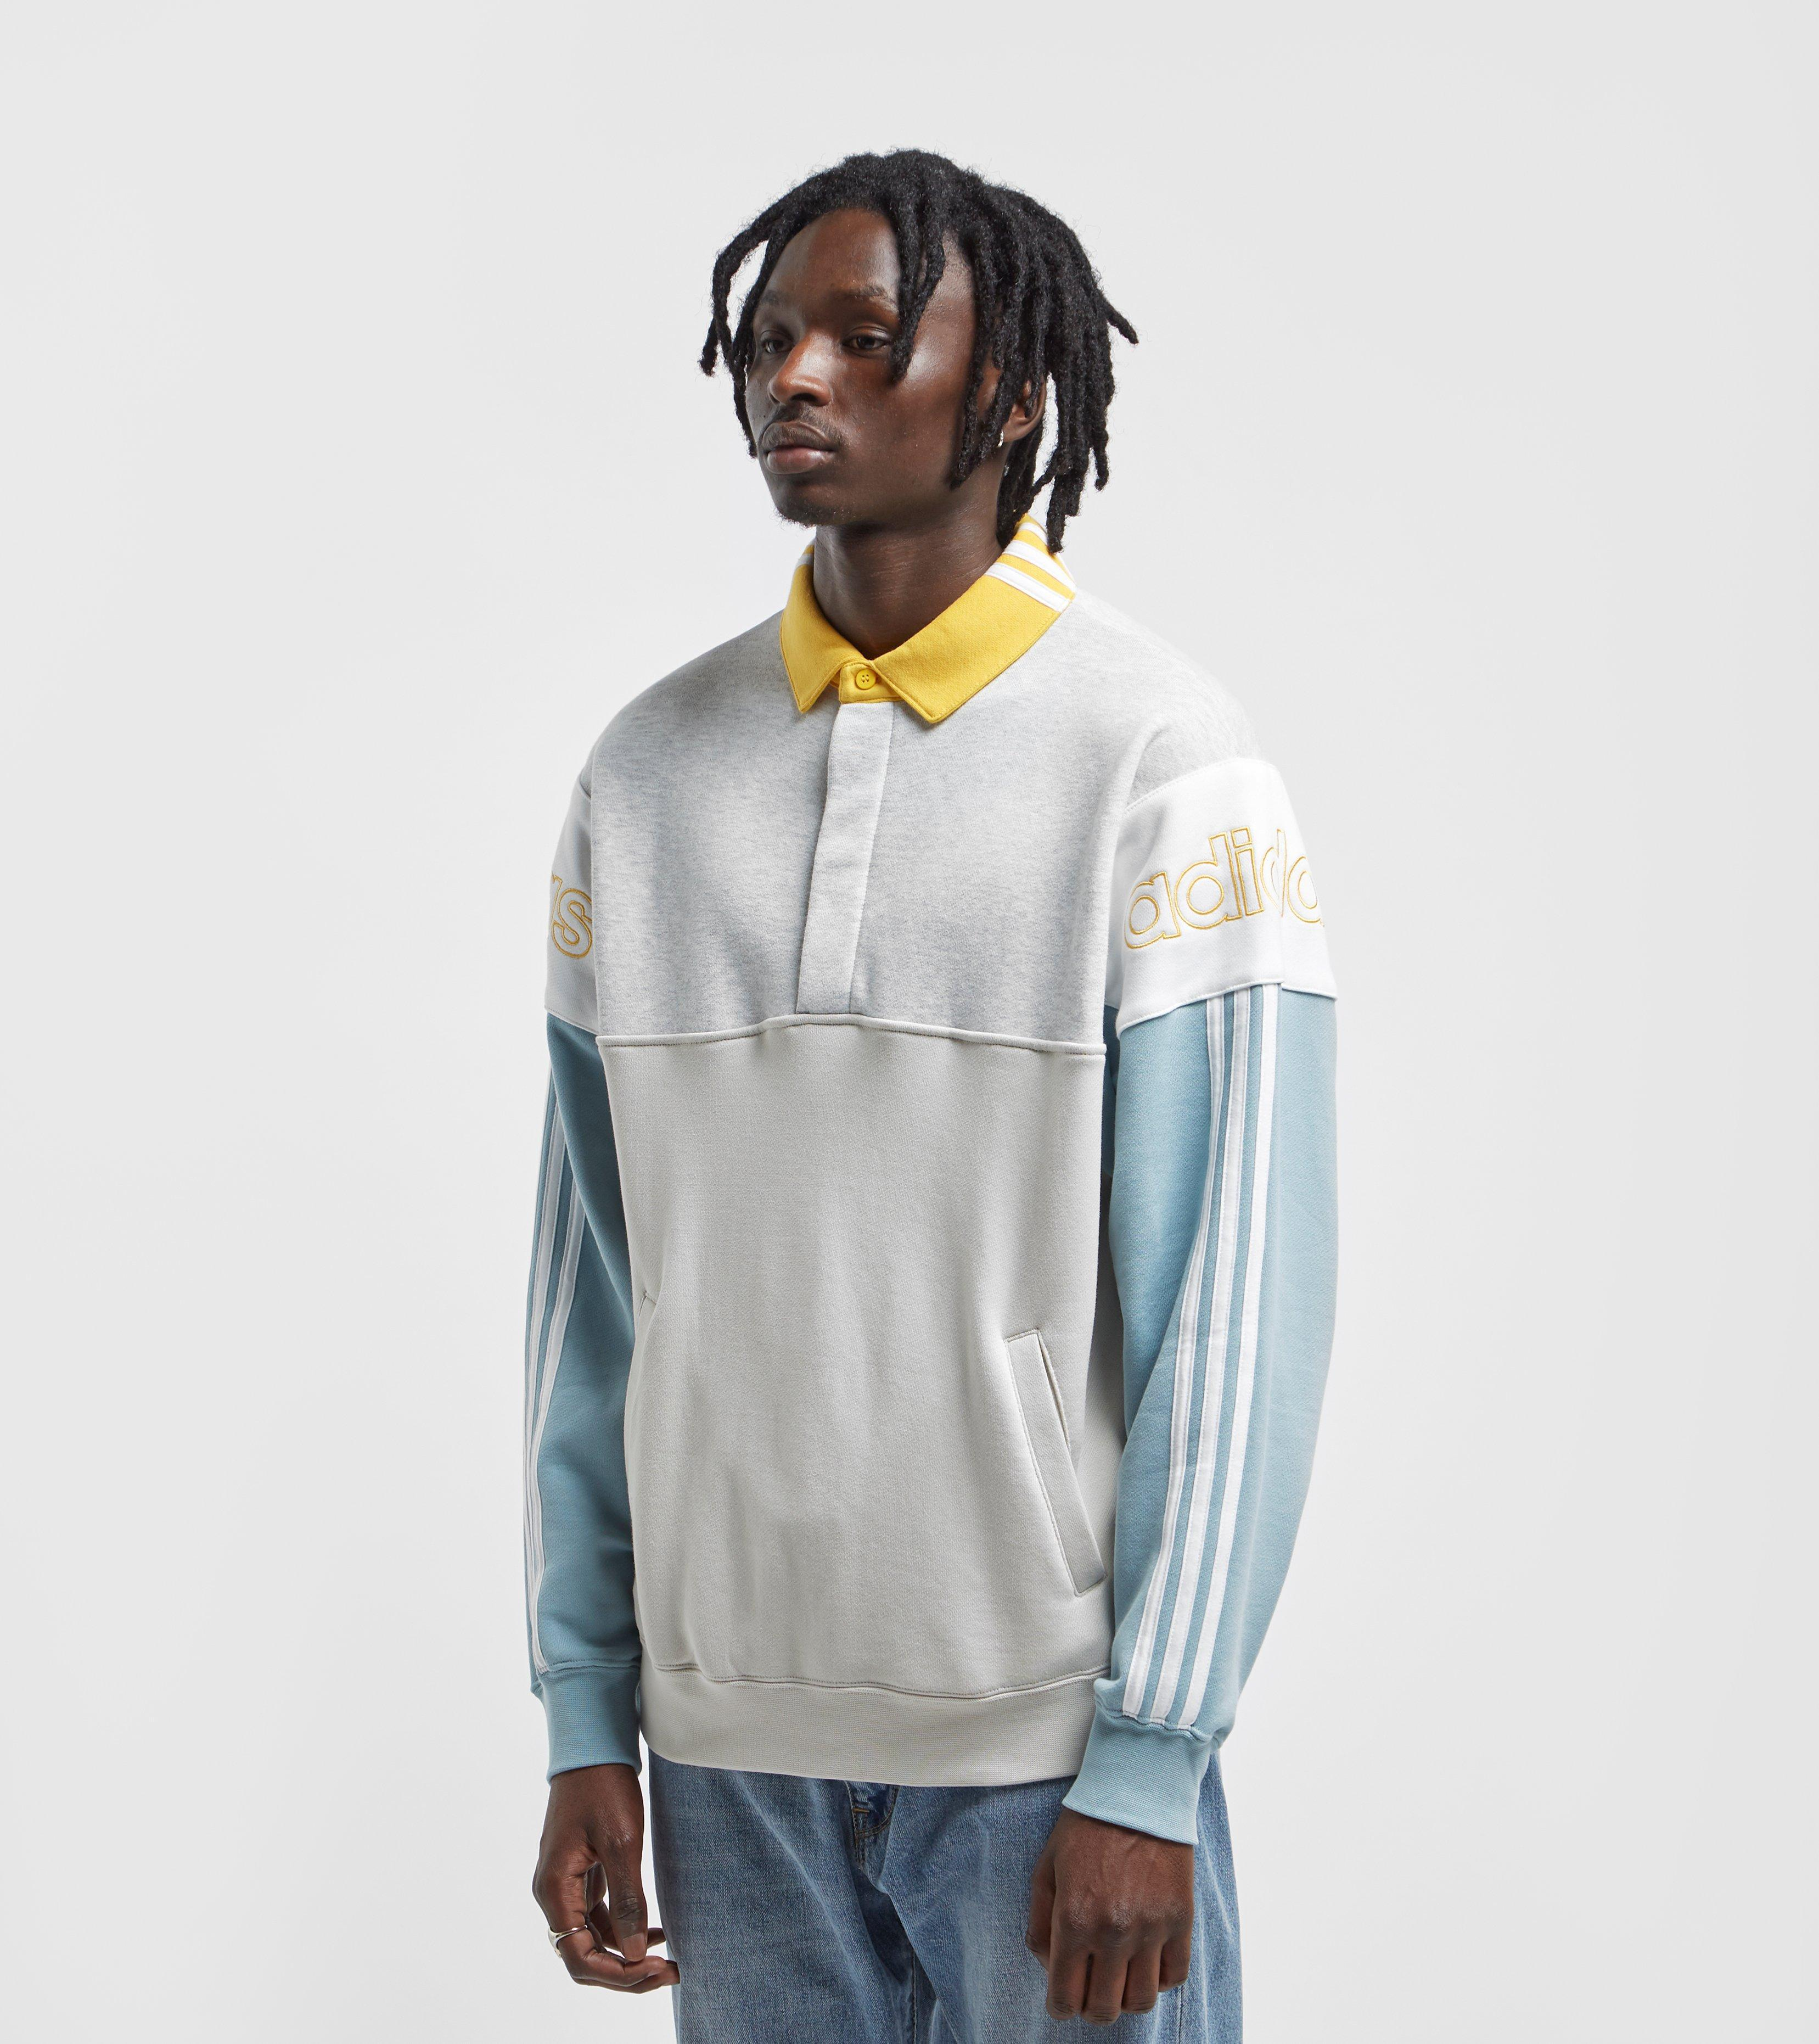 d787cffcea3 Learn These Adidas Originals Rugby Sweatshirt {Swypeout}